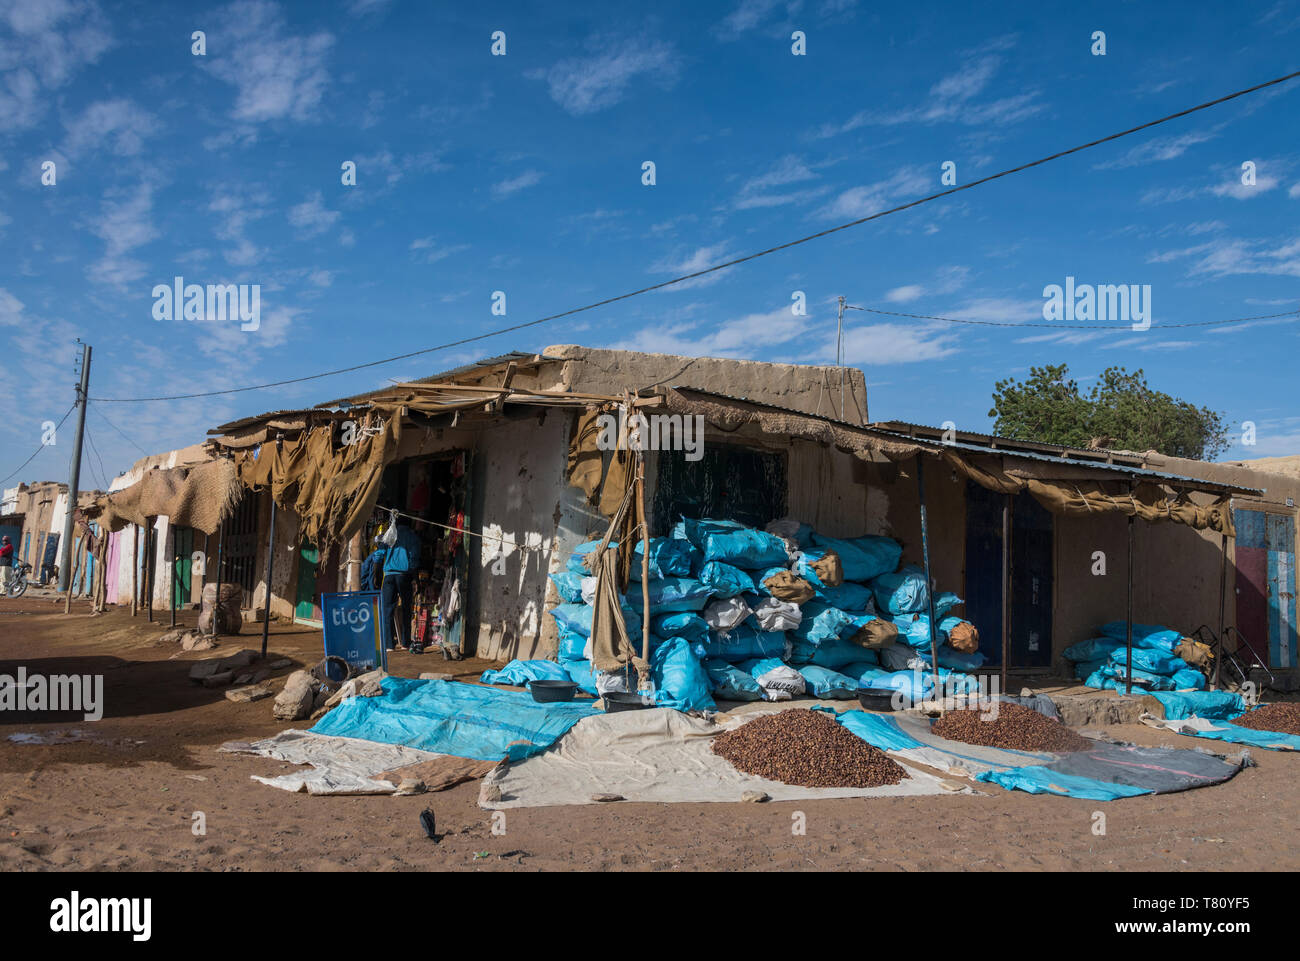 Market stalls in the desert town of Faya-Largeau, northern Chad, Africa - Stock Image